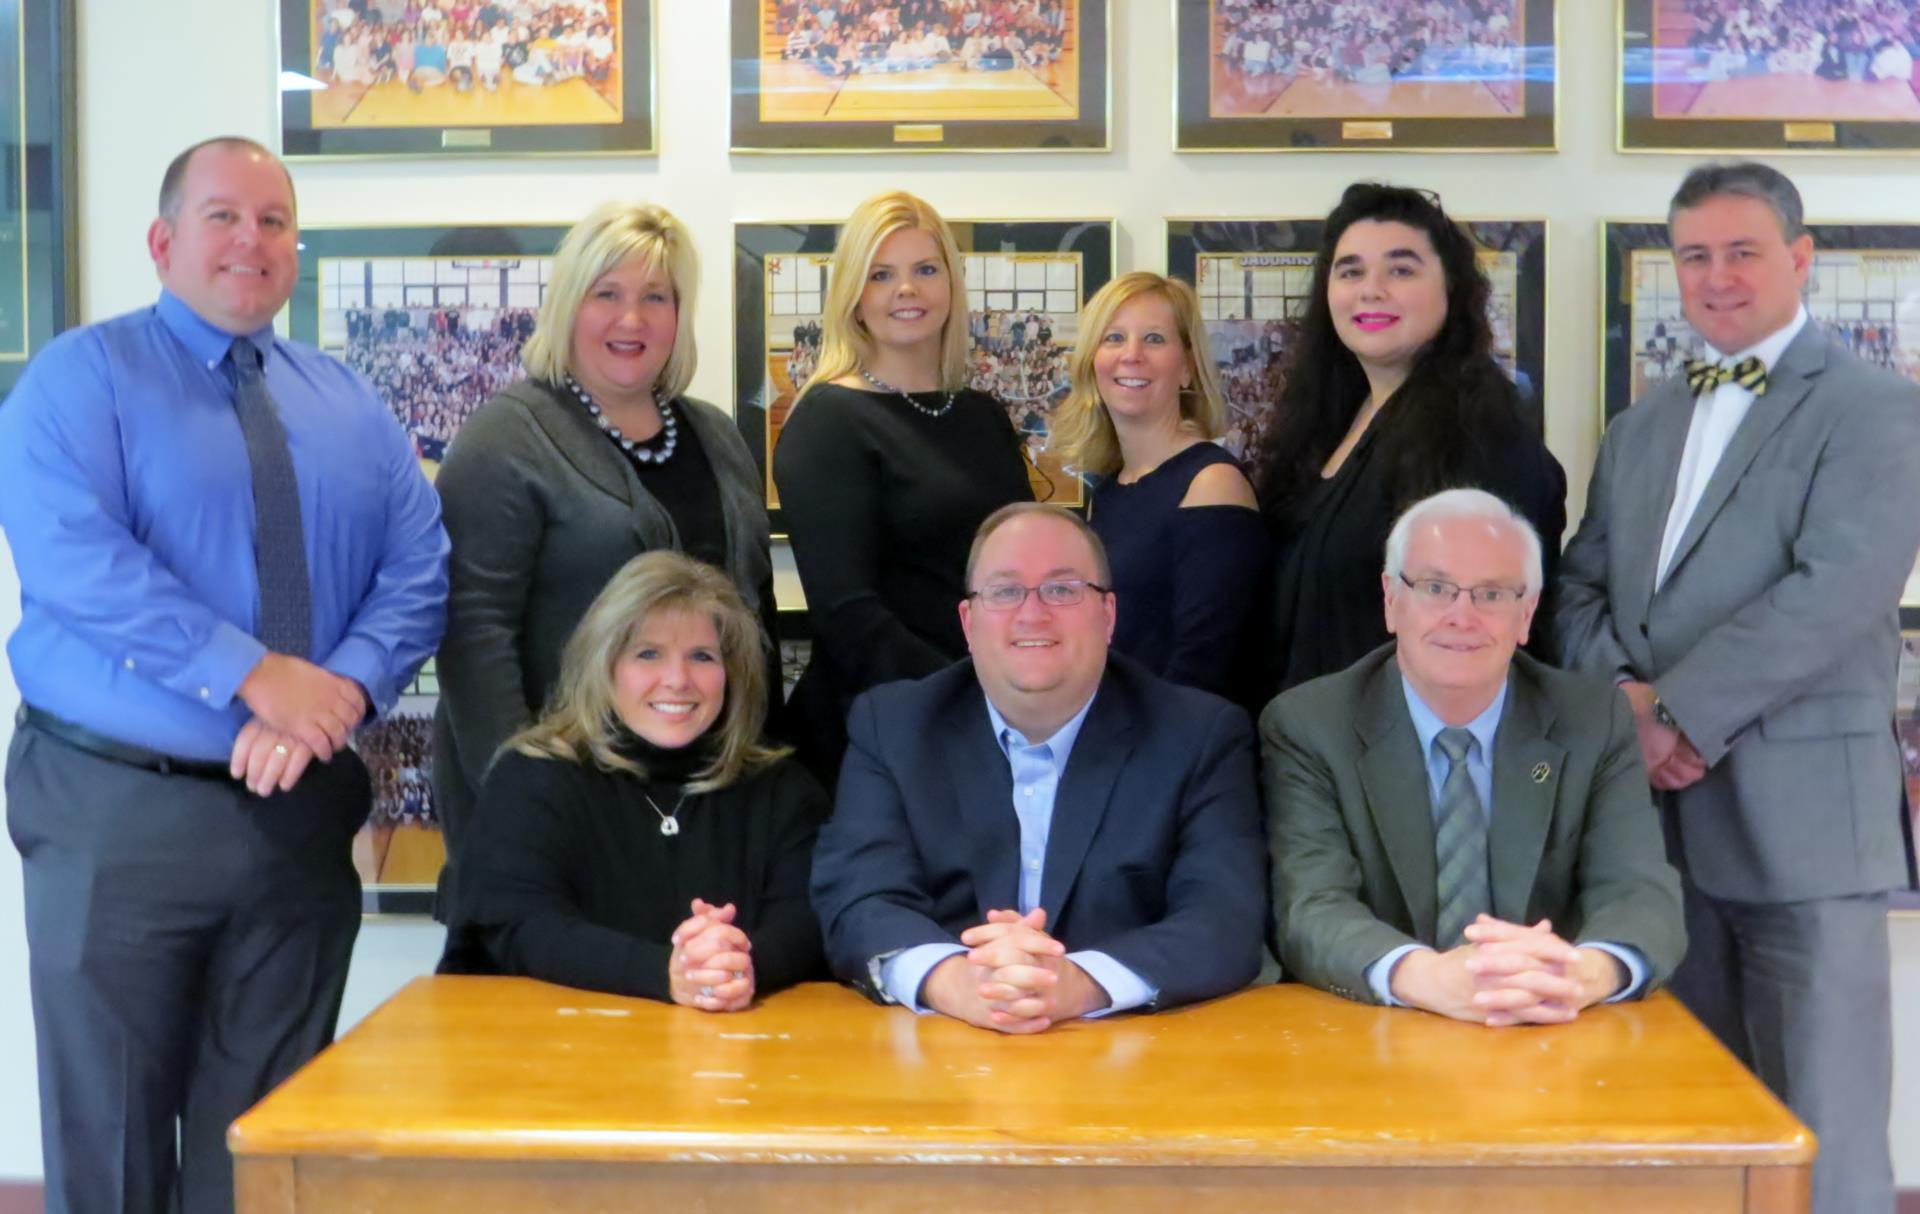 WJHSD Board of Education